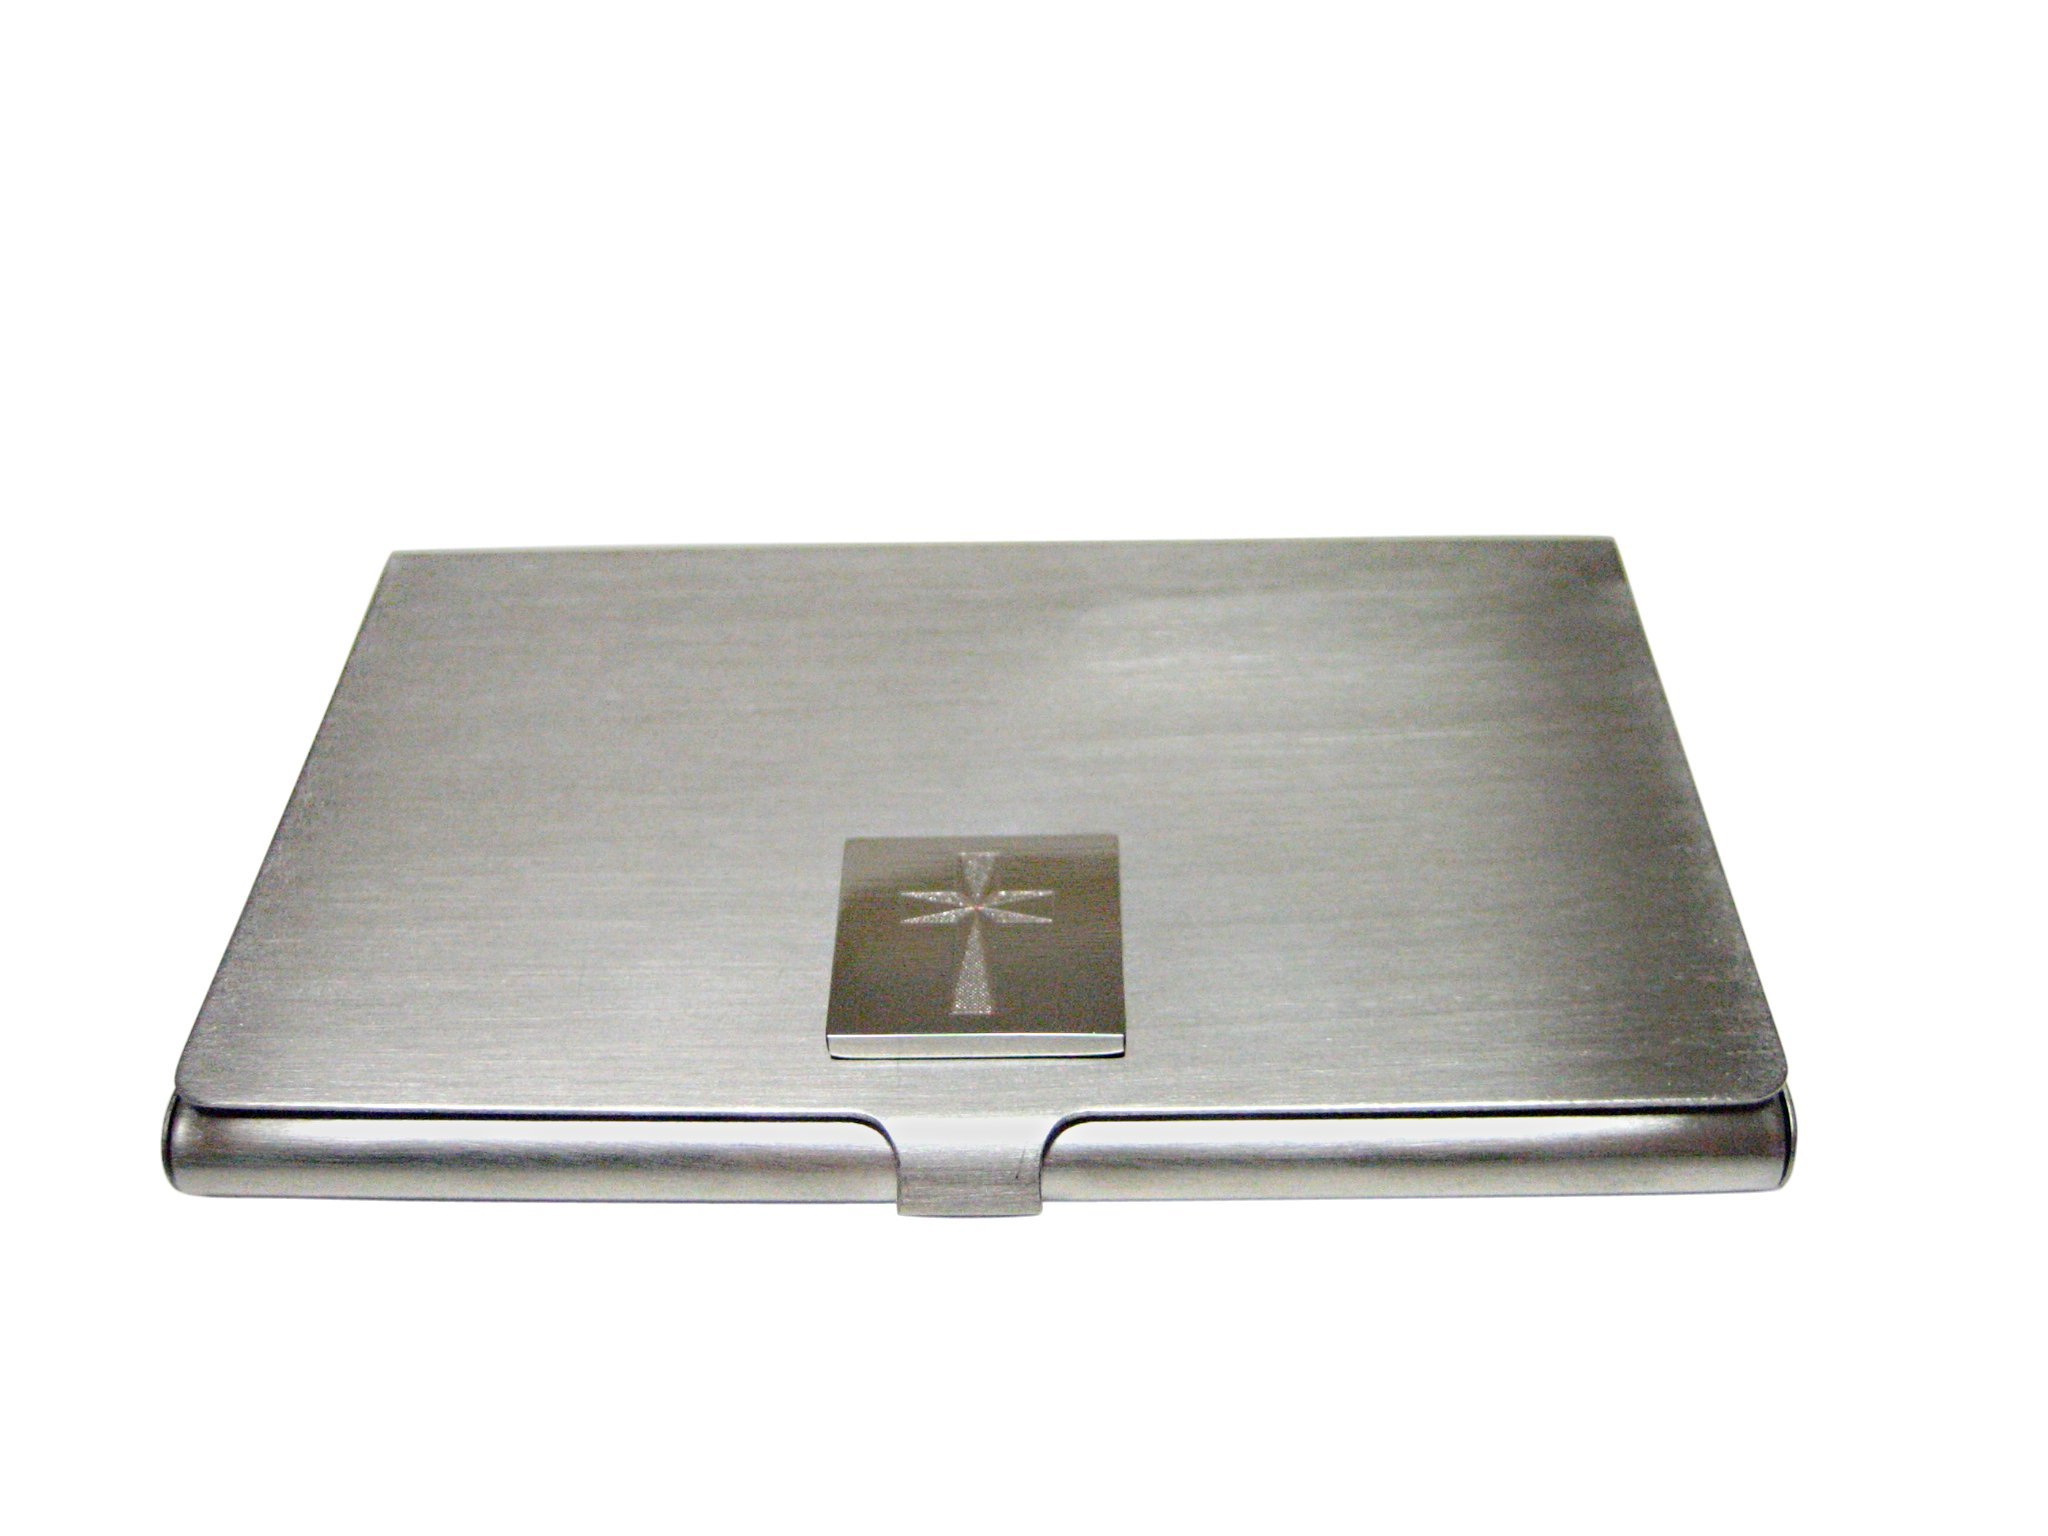 Etched Silver Toned Religious Cross Business Card Holder